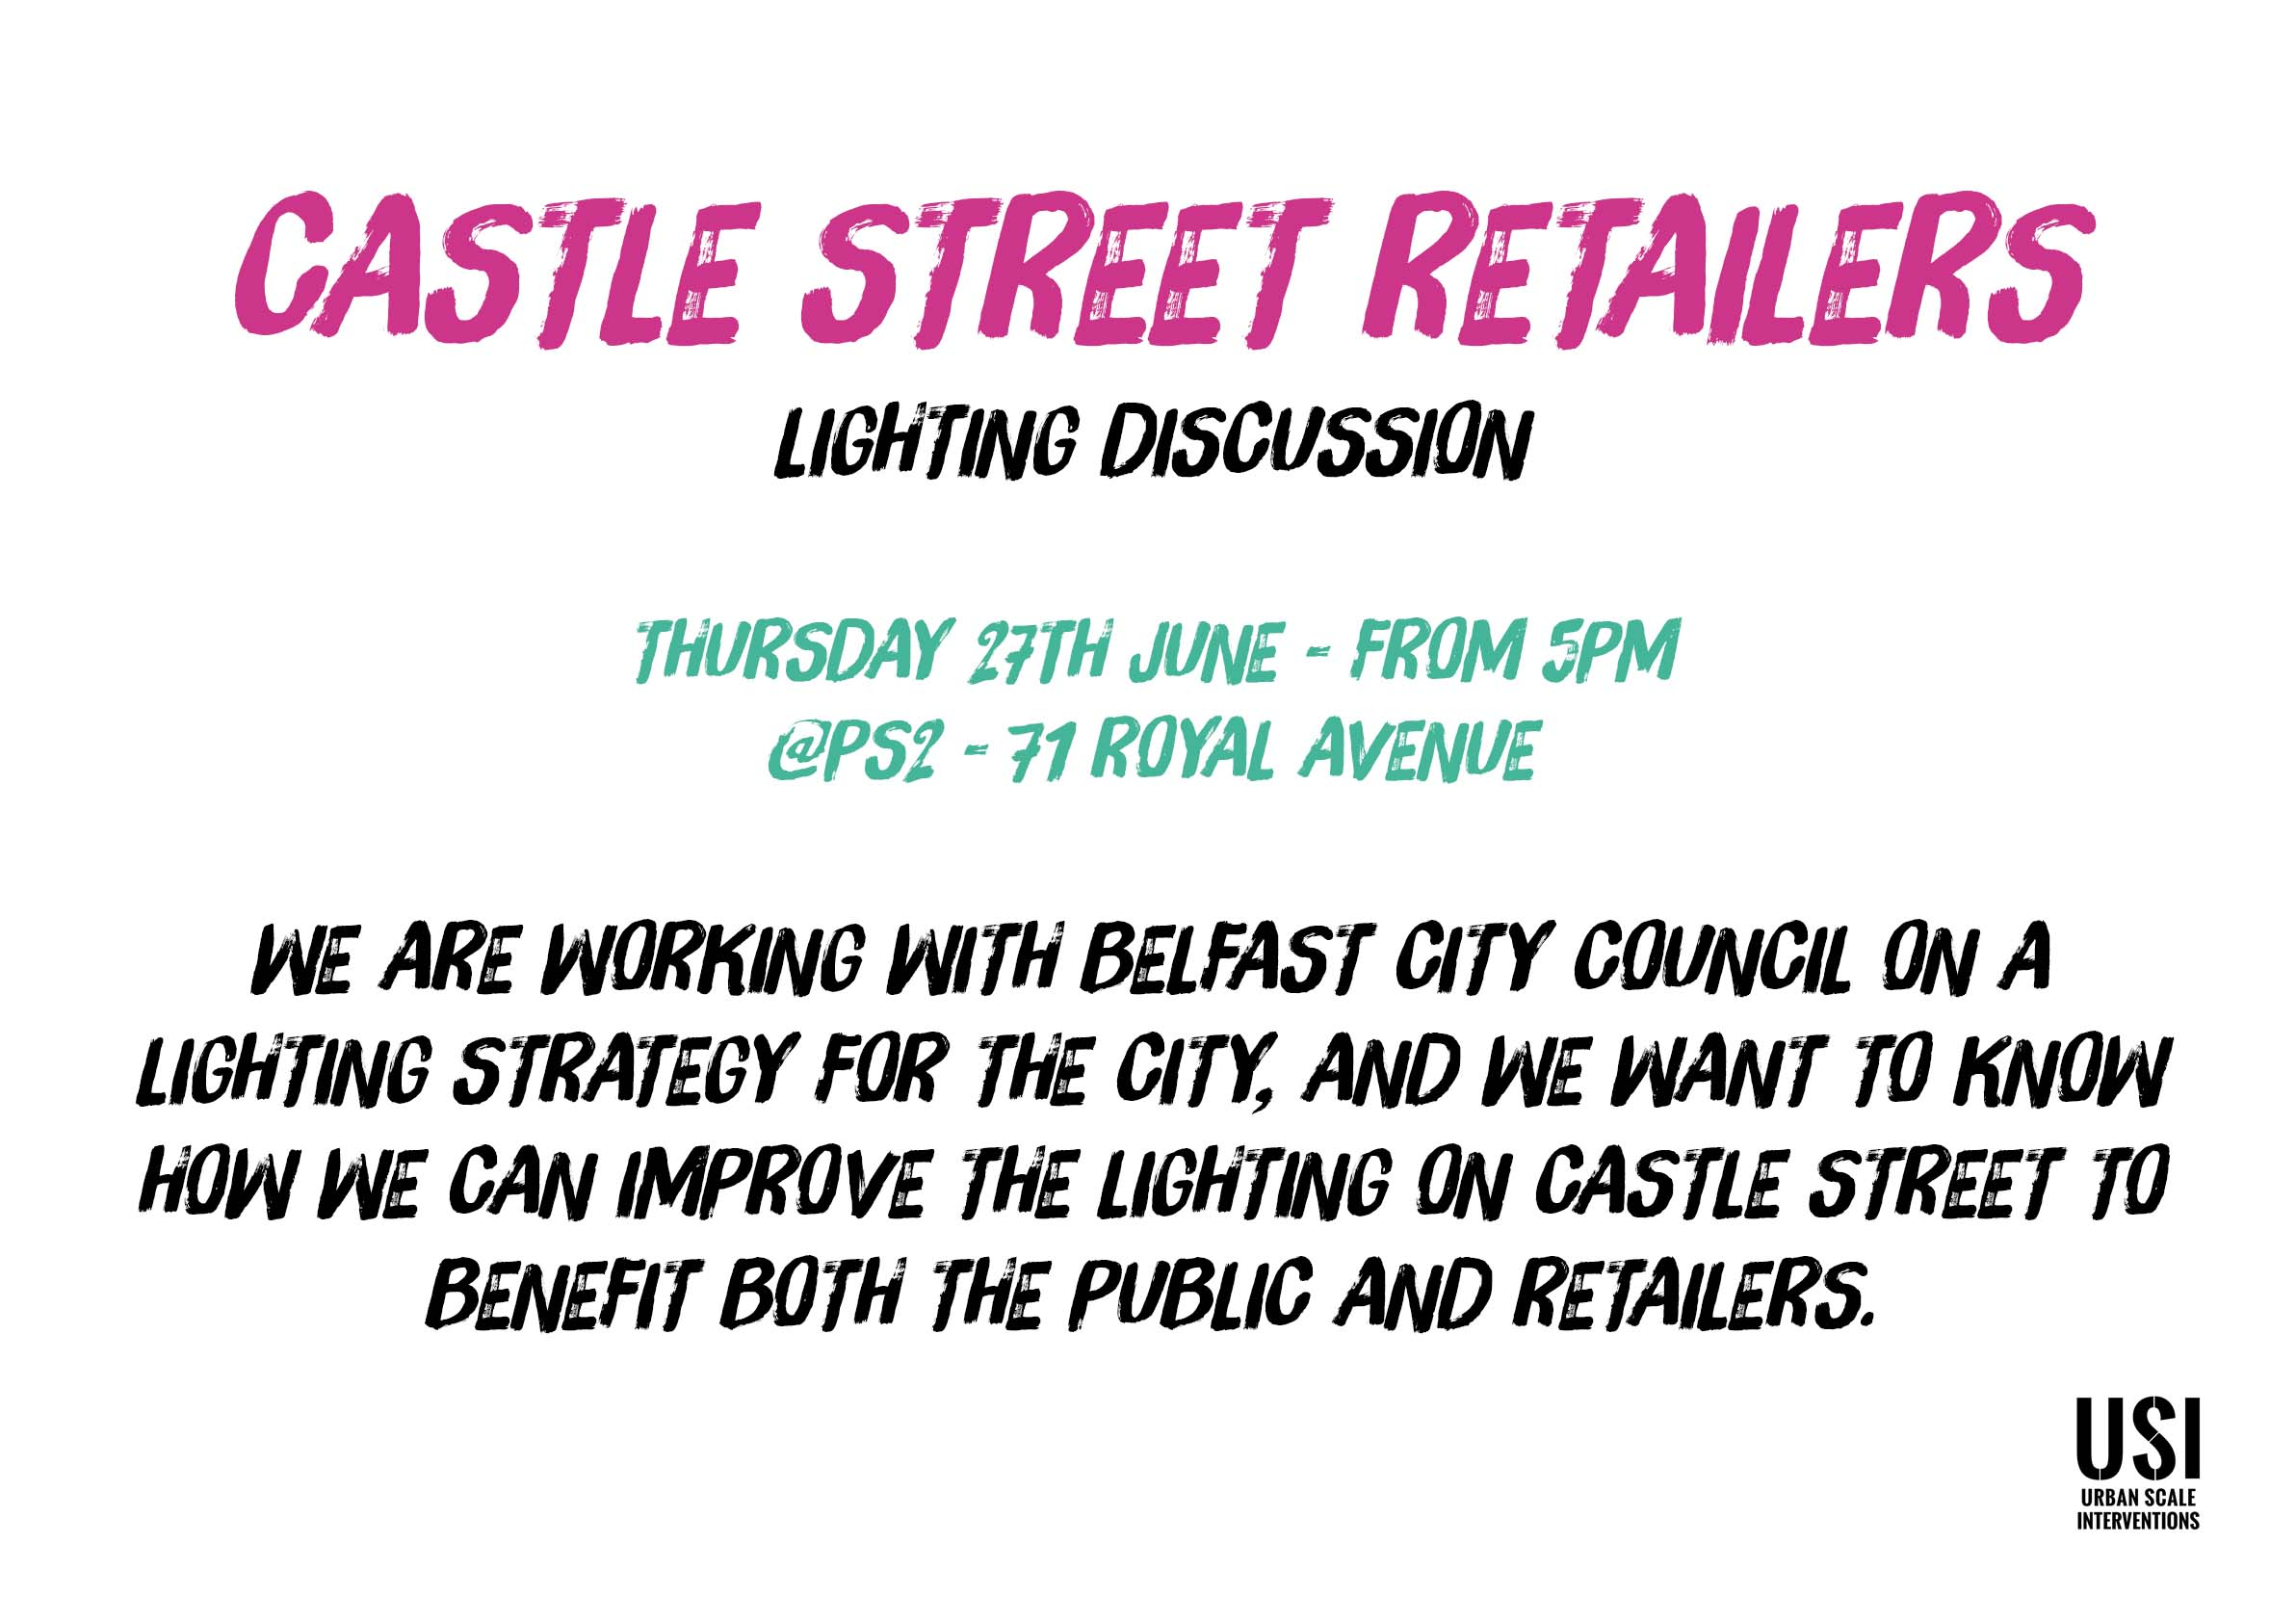 Castle Street Retailers Discussion Flyer.jpg